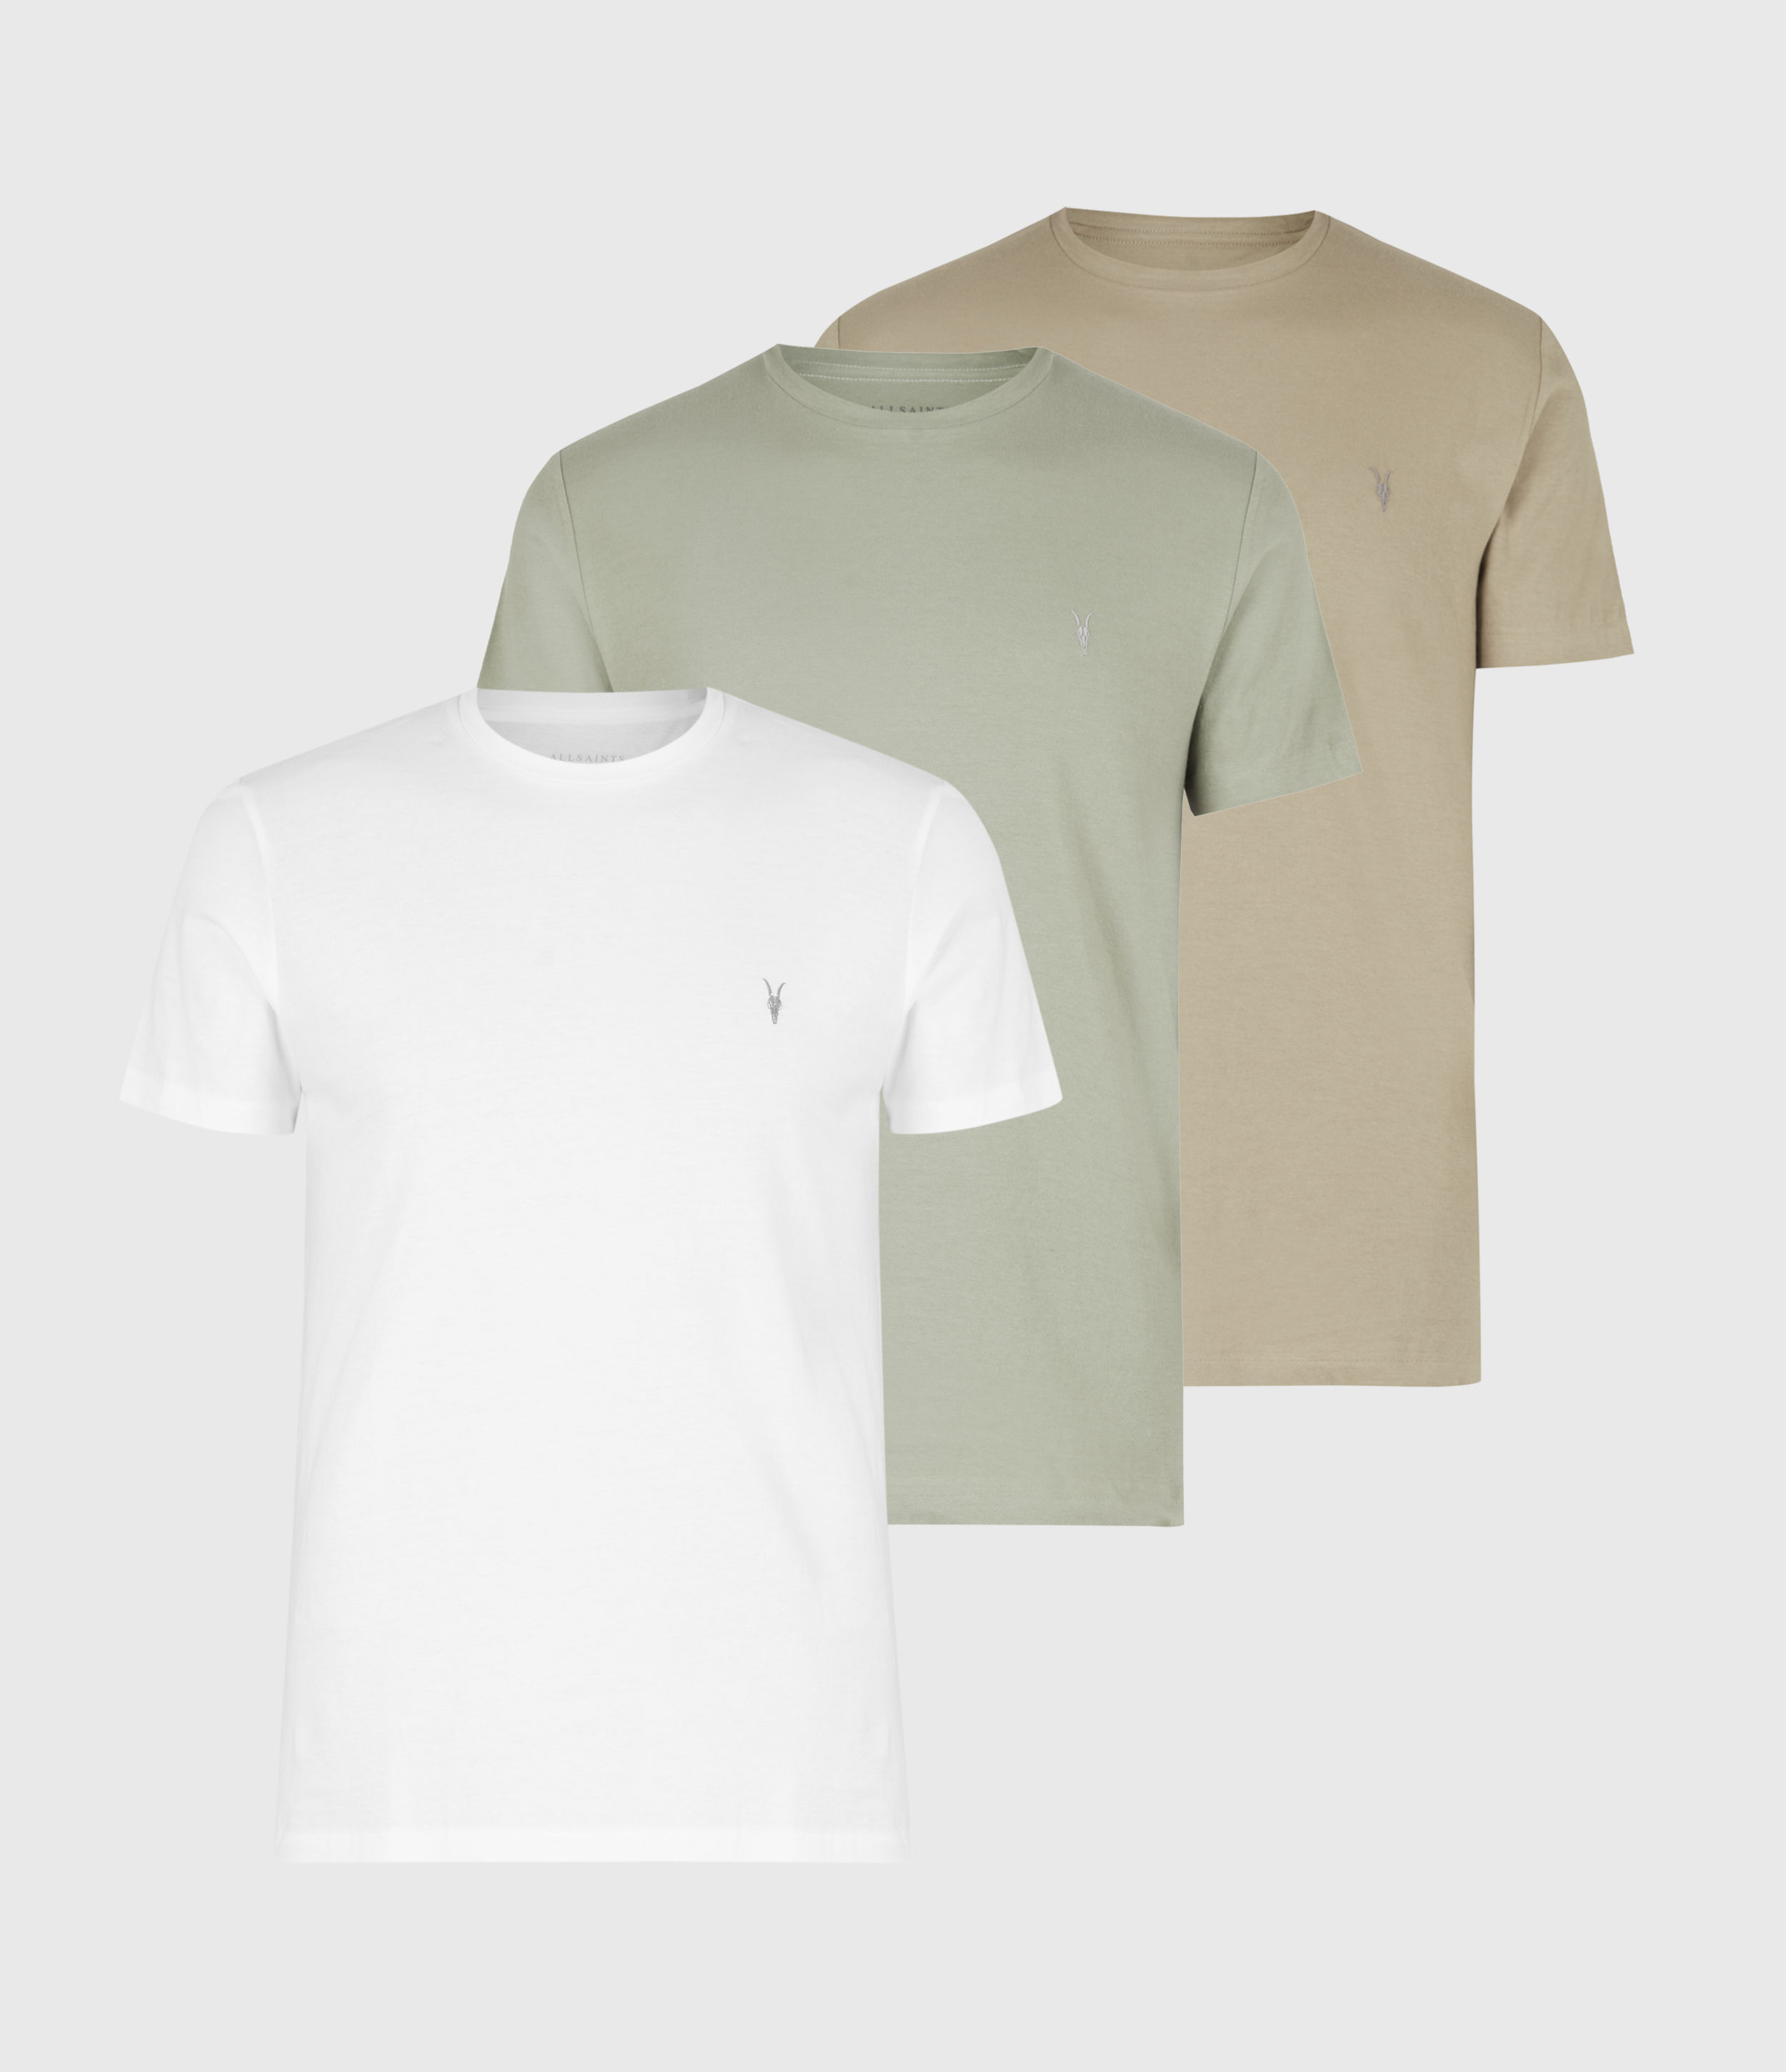 AllSaints Mens Tonic Crew 3 Pack T-Shirts, Optic/palm/agave G, Size: S